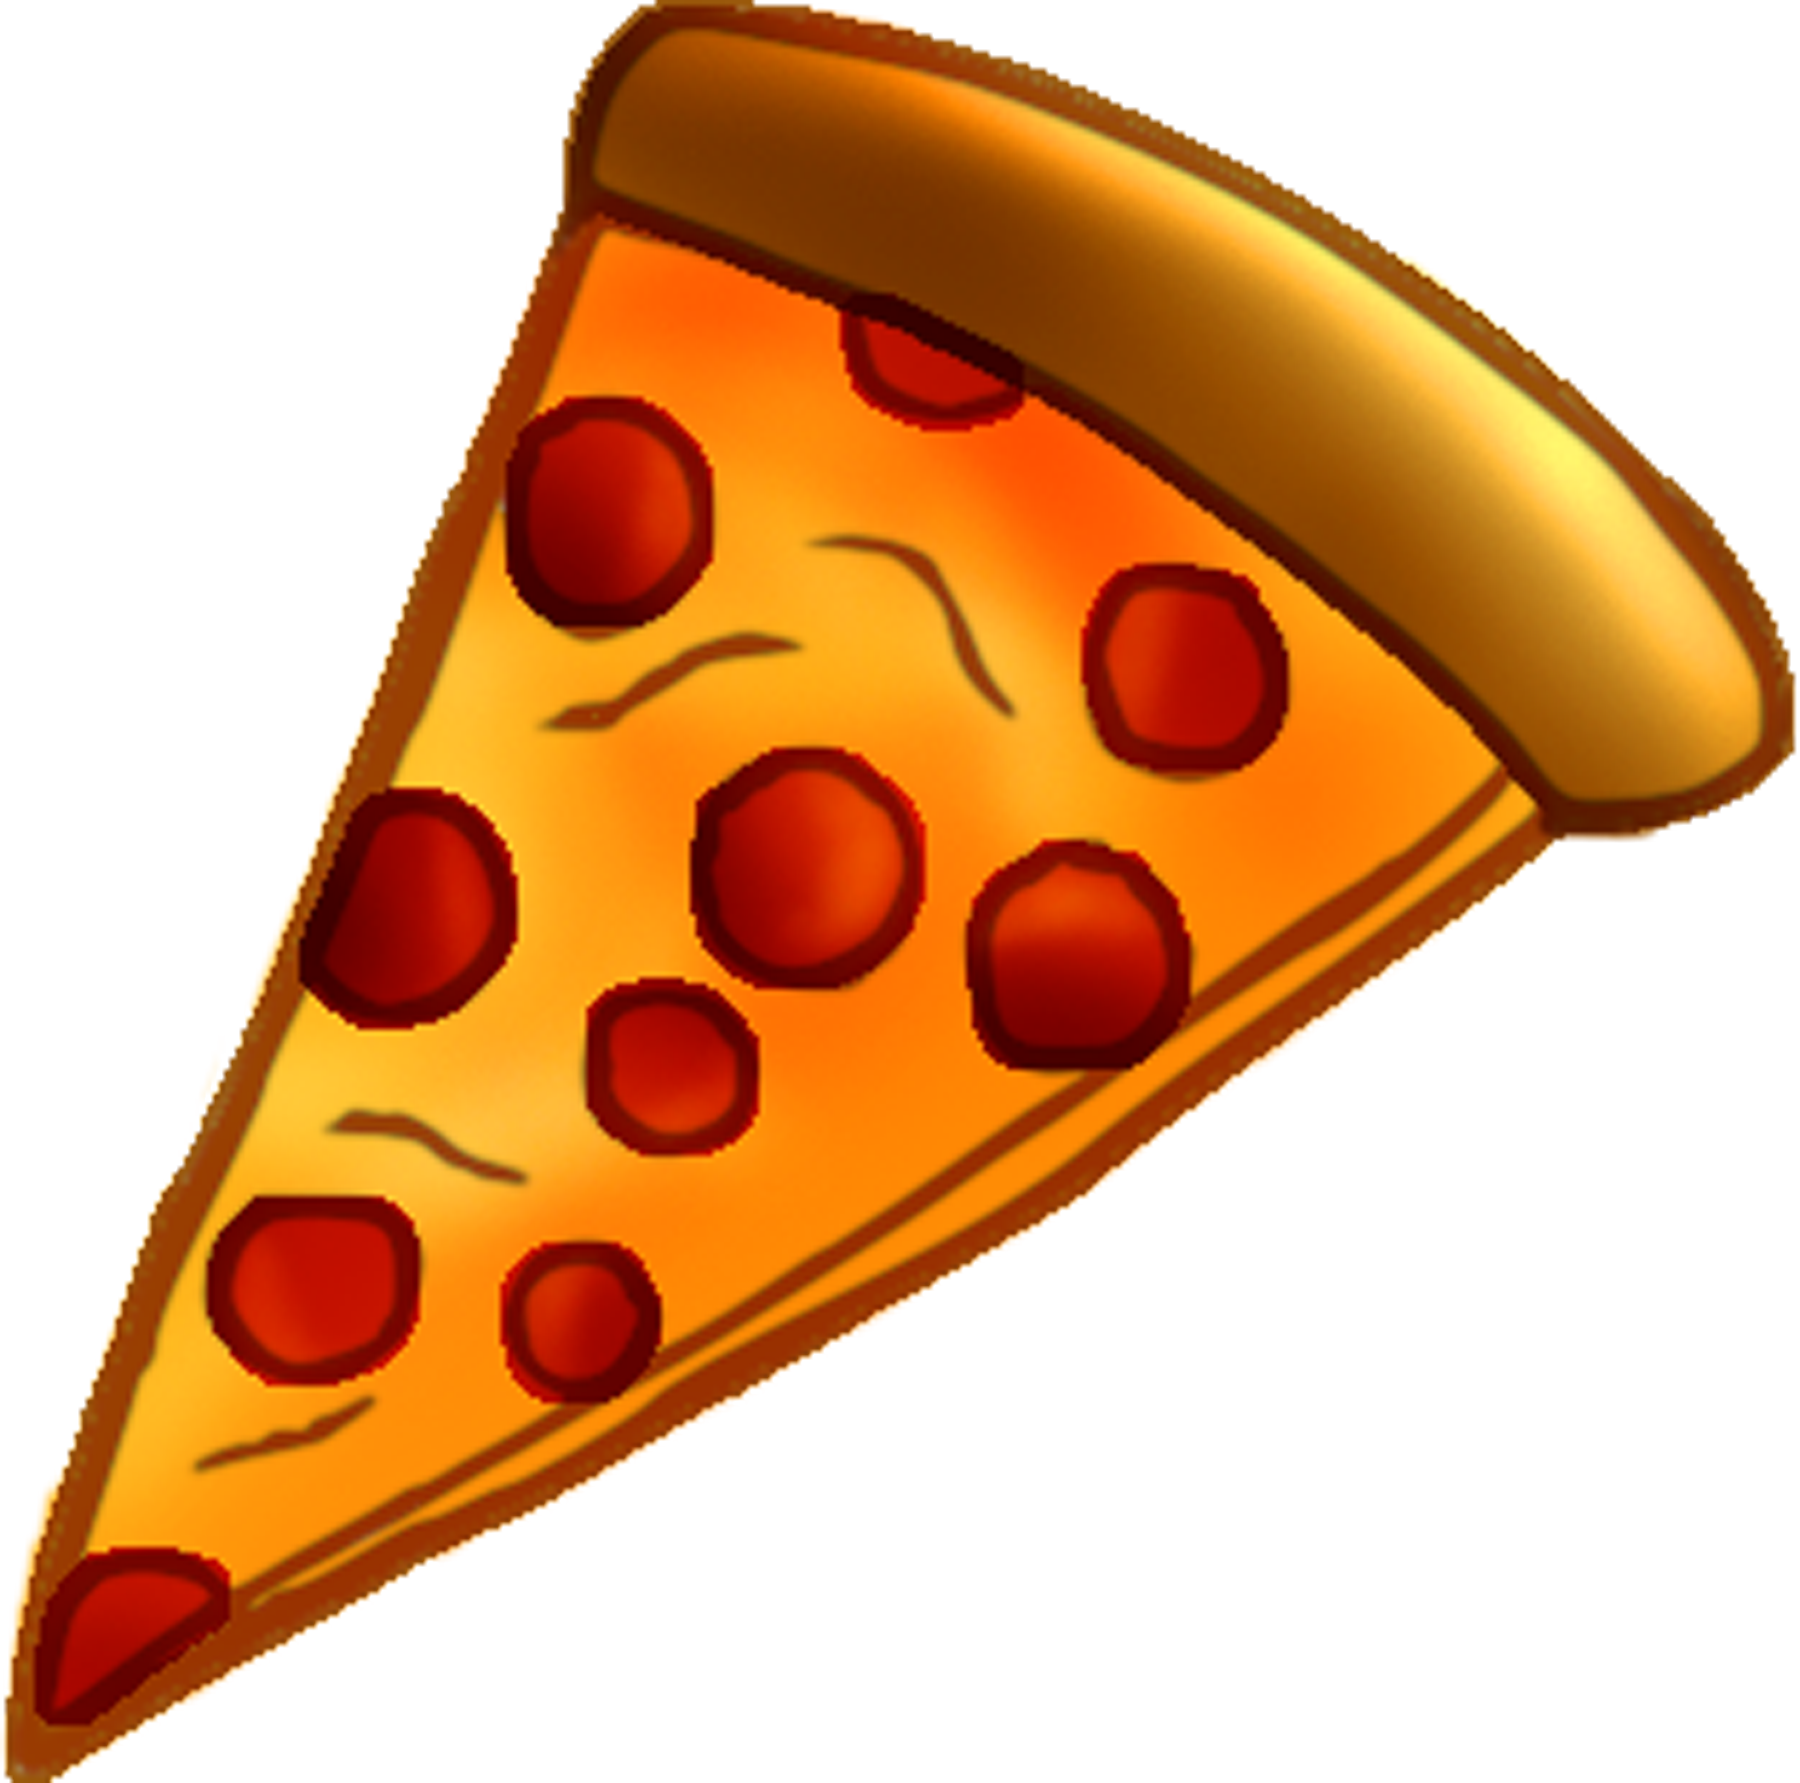 Free PNG Pizza Slice - 76980